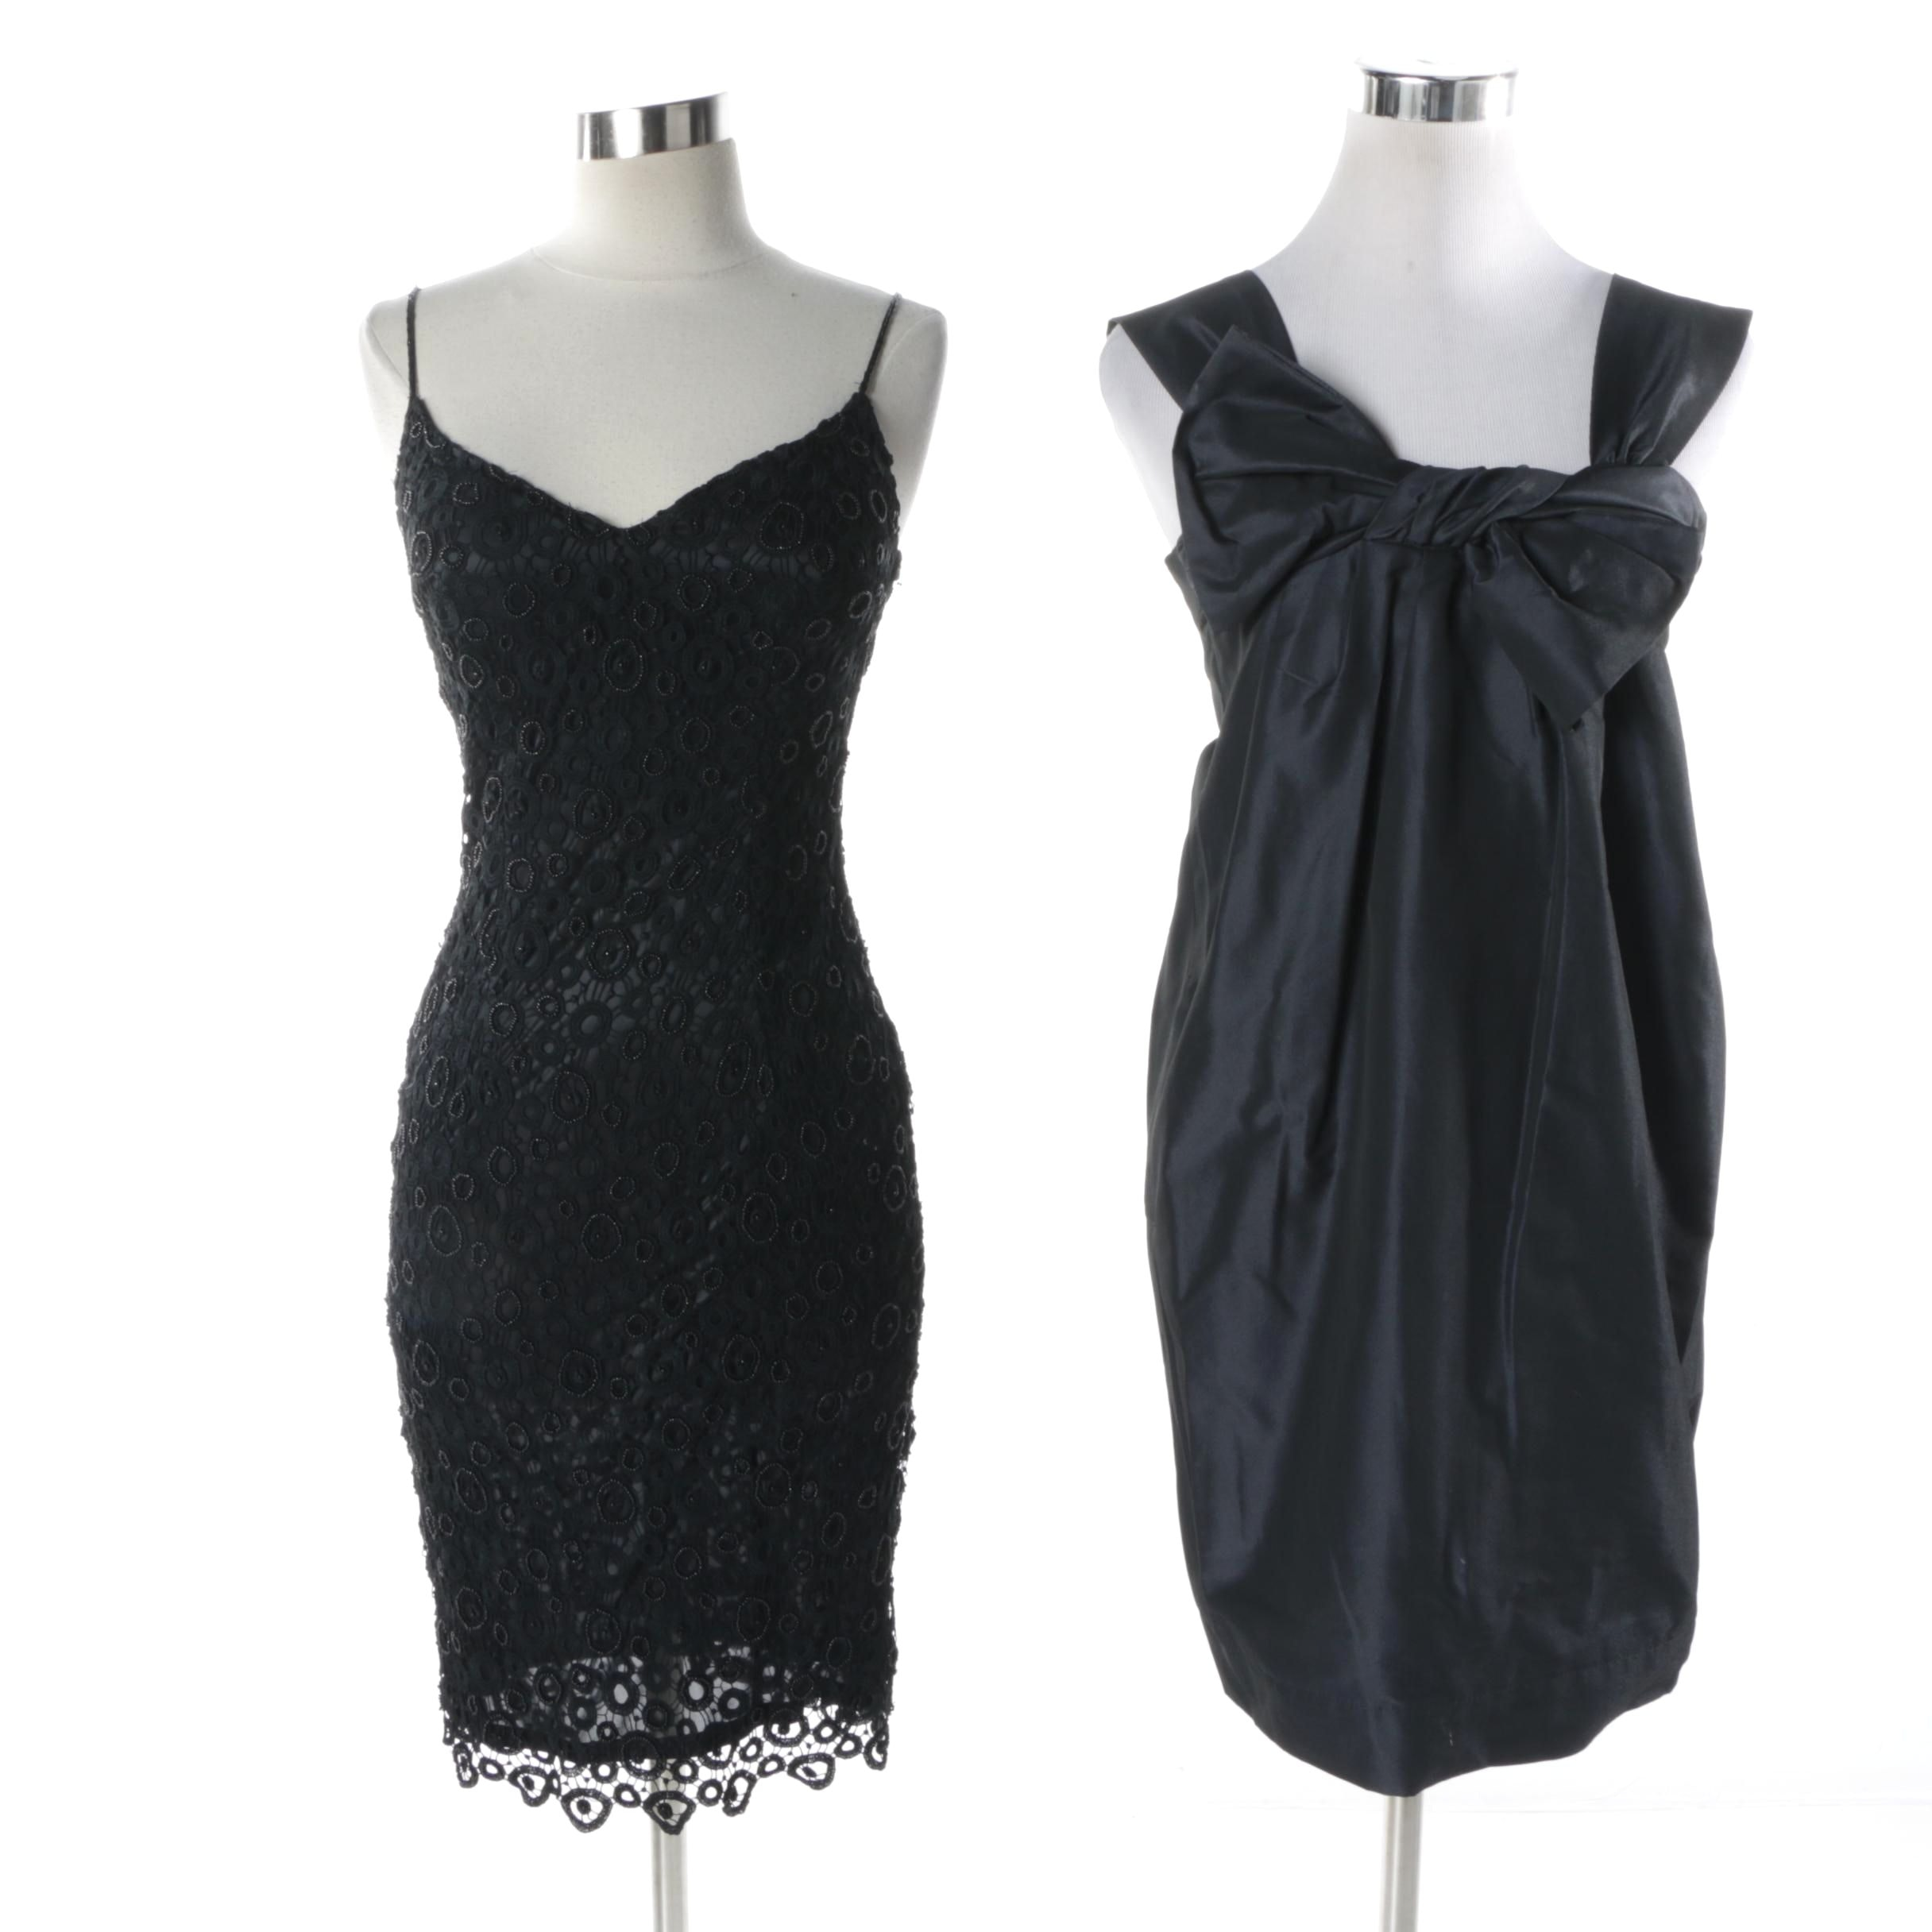 Lillie Rubin and French Connection Black Sleeveless Dresses